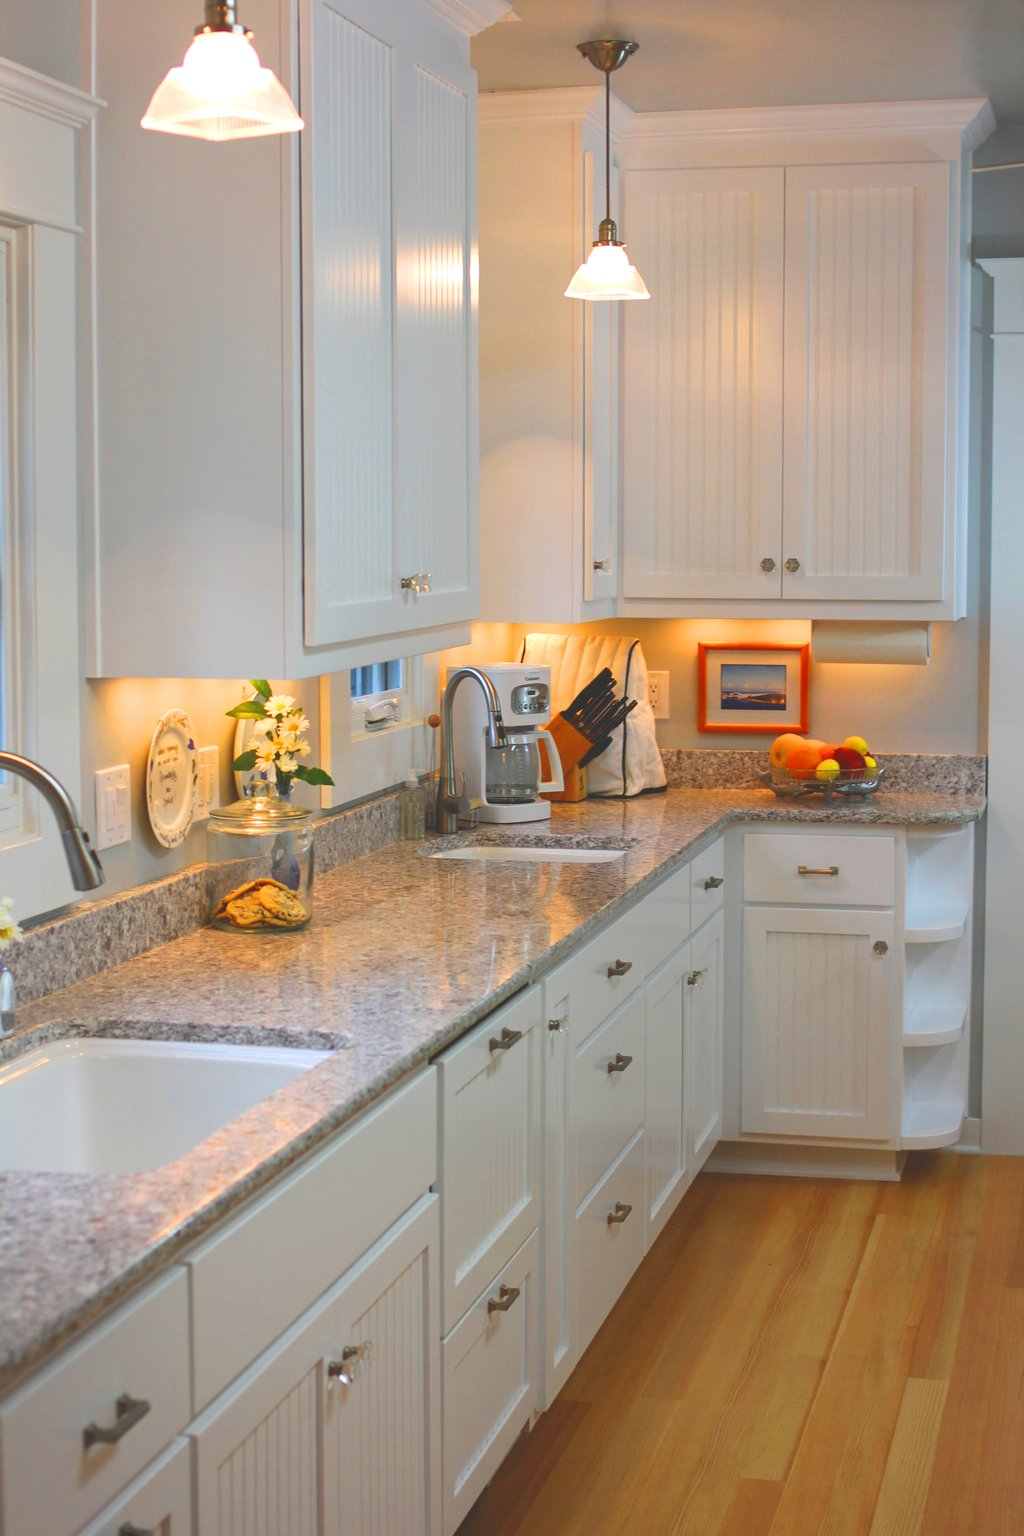 Cozy Kitchen Cabinet Door Picture Option Tip Idea How To Match Thermofoil Cabinet Doors